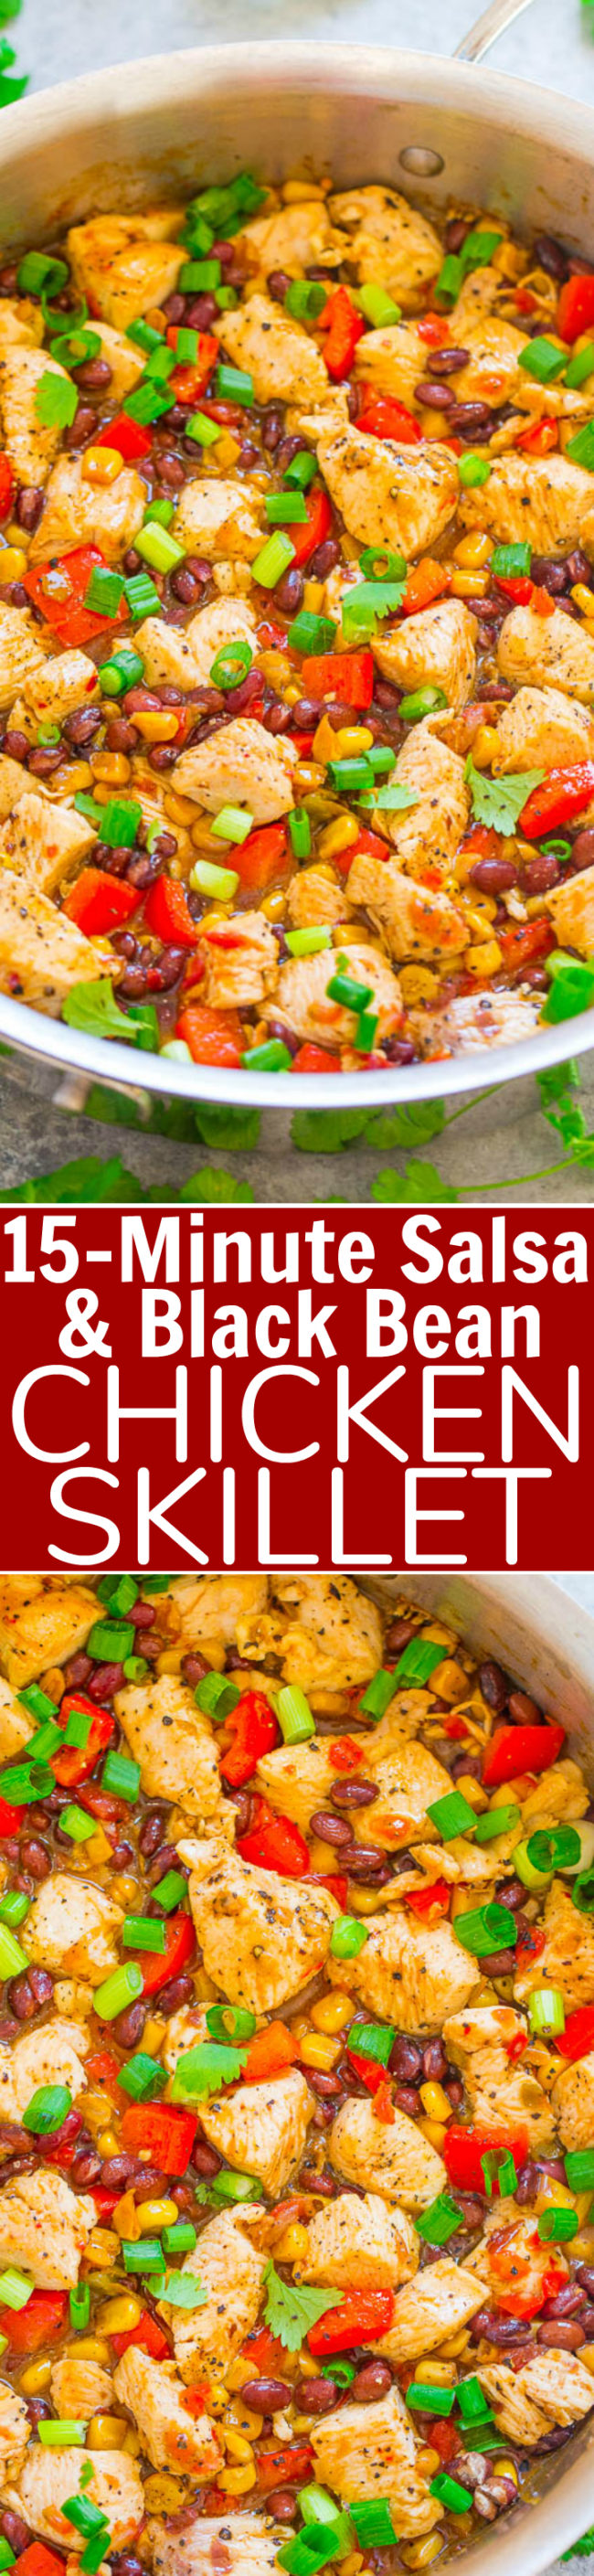 15-Minute Chicken Skillet and Black Bean Sauce: Fast, EASY, family-friendly, healthy but hearty, naturally gluten-free food, inspired by Mexico! The PERFECT recipe to liven up your regular chicken dinner during the week!